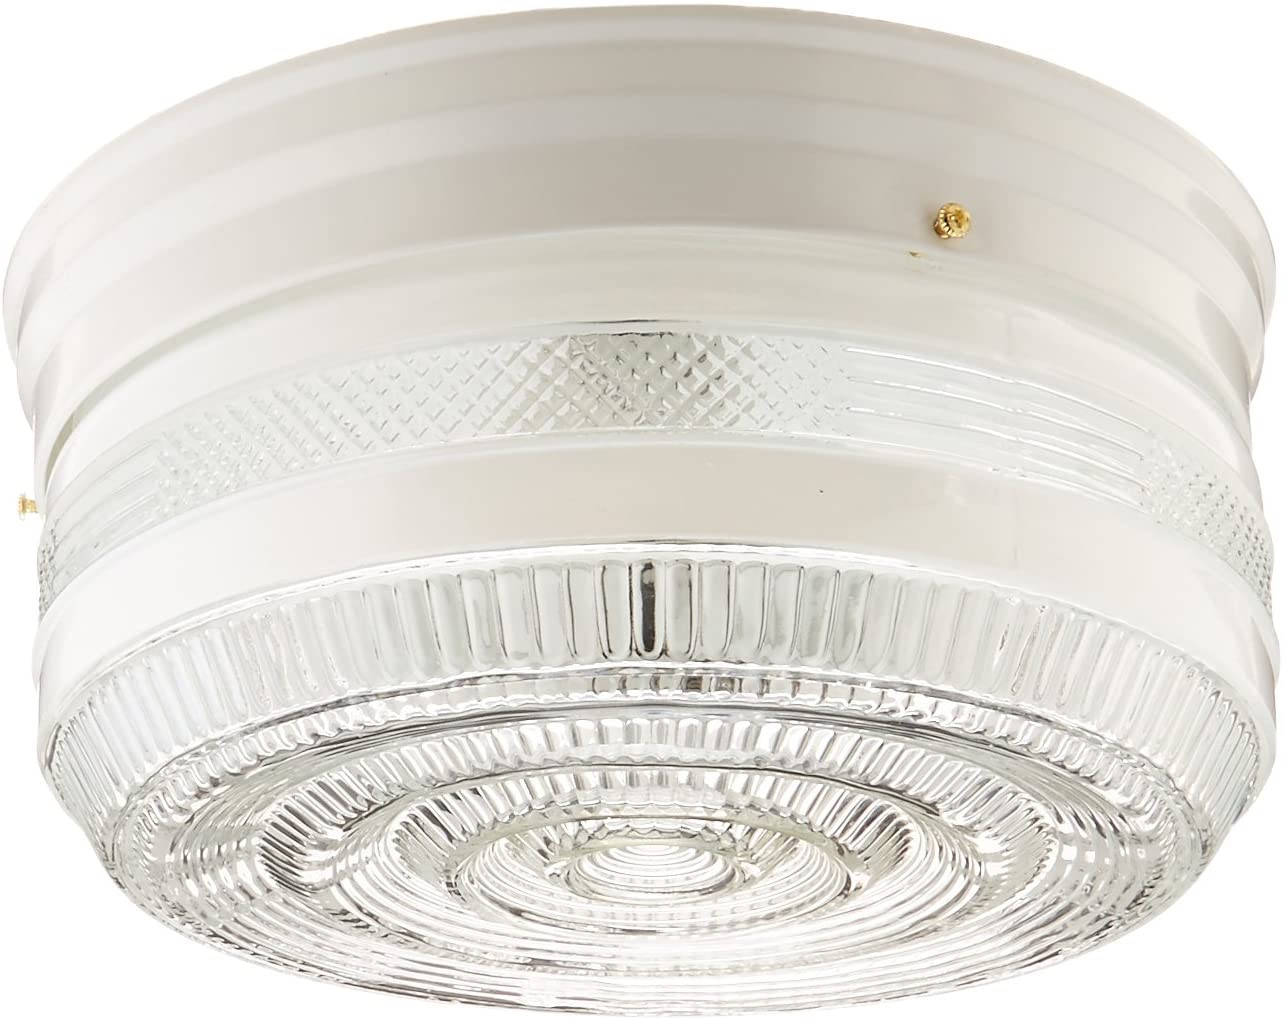 Boston Harbor F15WH02-10043L 7022049 Dimmable Ceiling Light Fixture, (2) 60/13 W Medium A19/Cfl Lamp, White